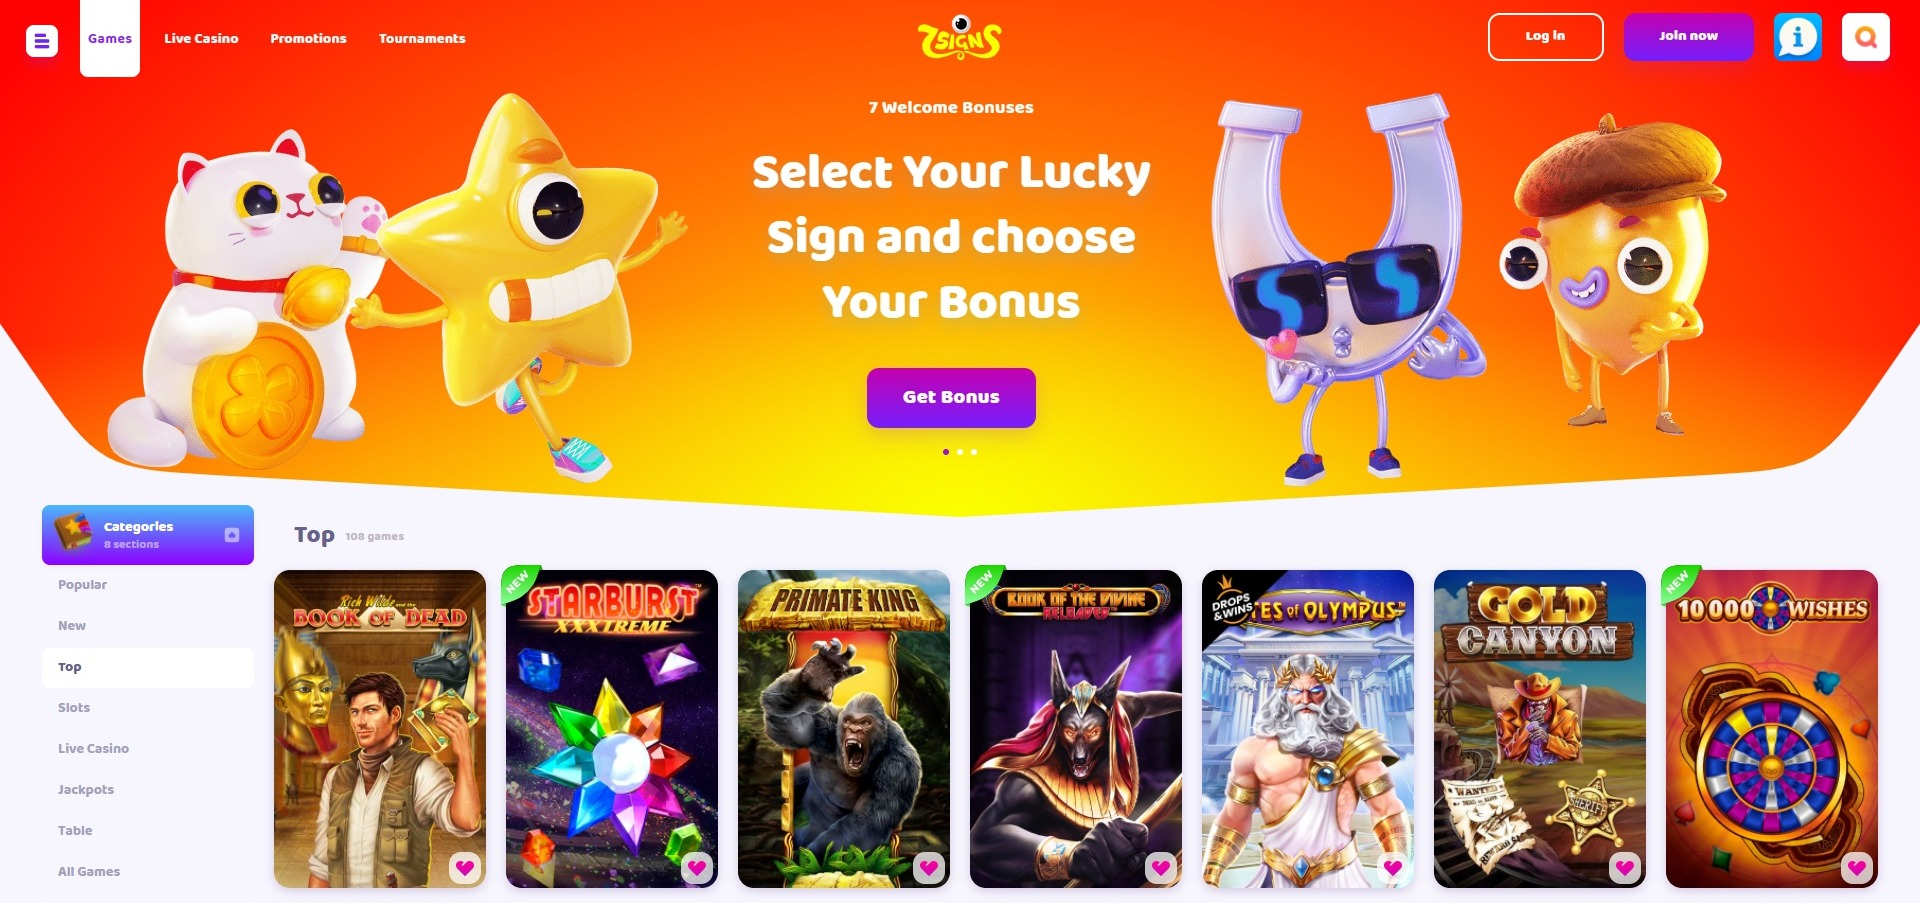 7signs casino games